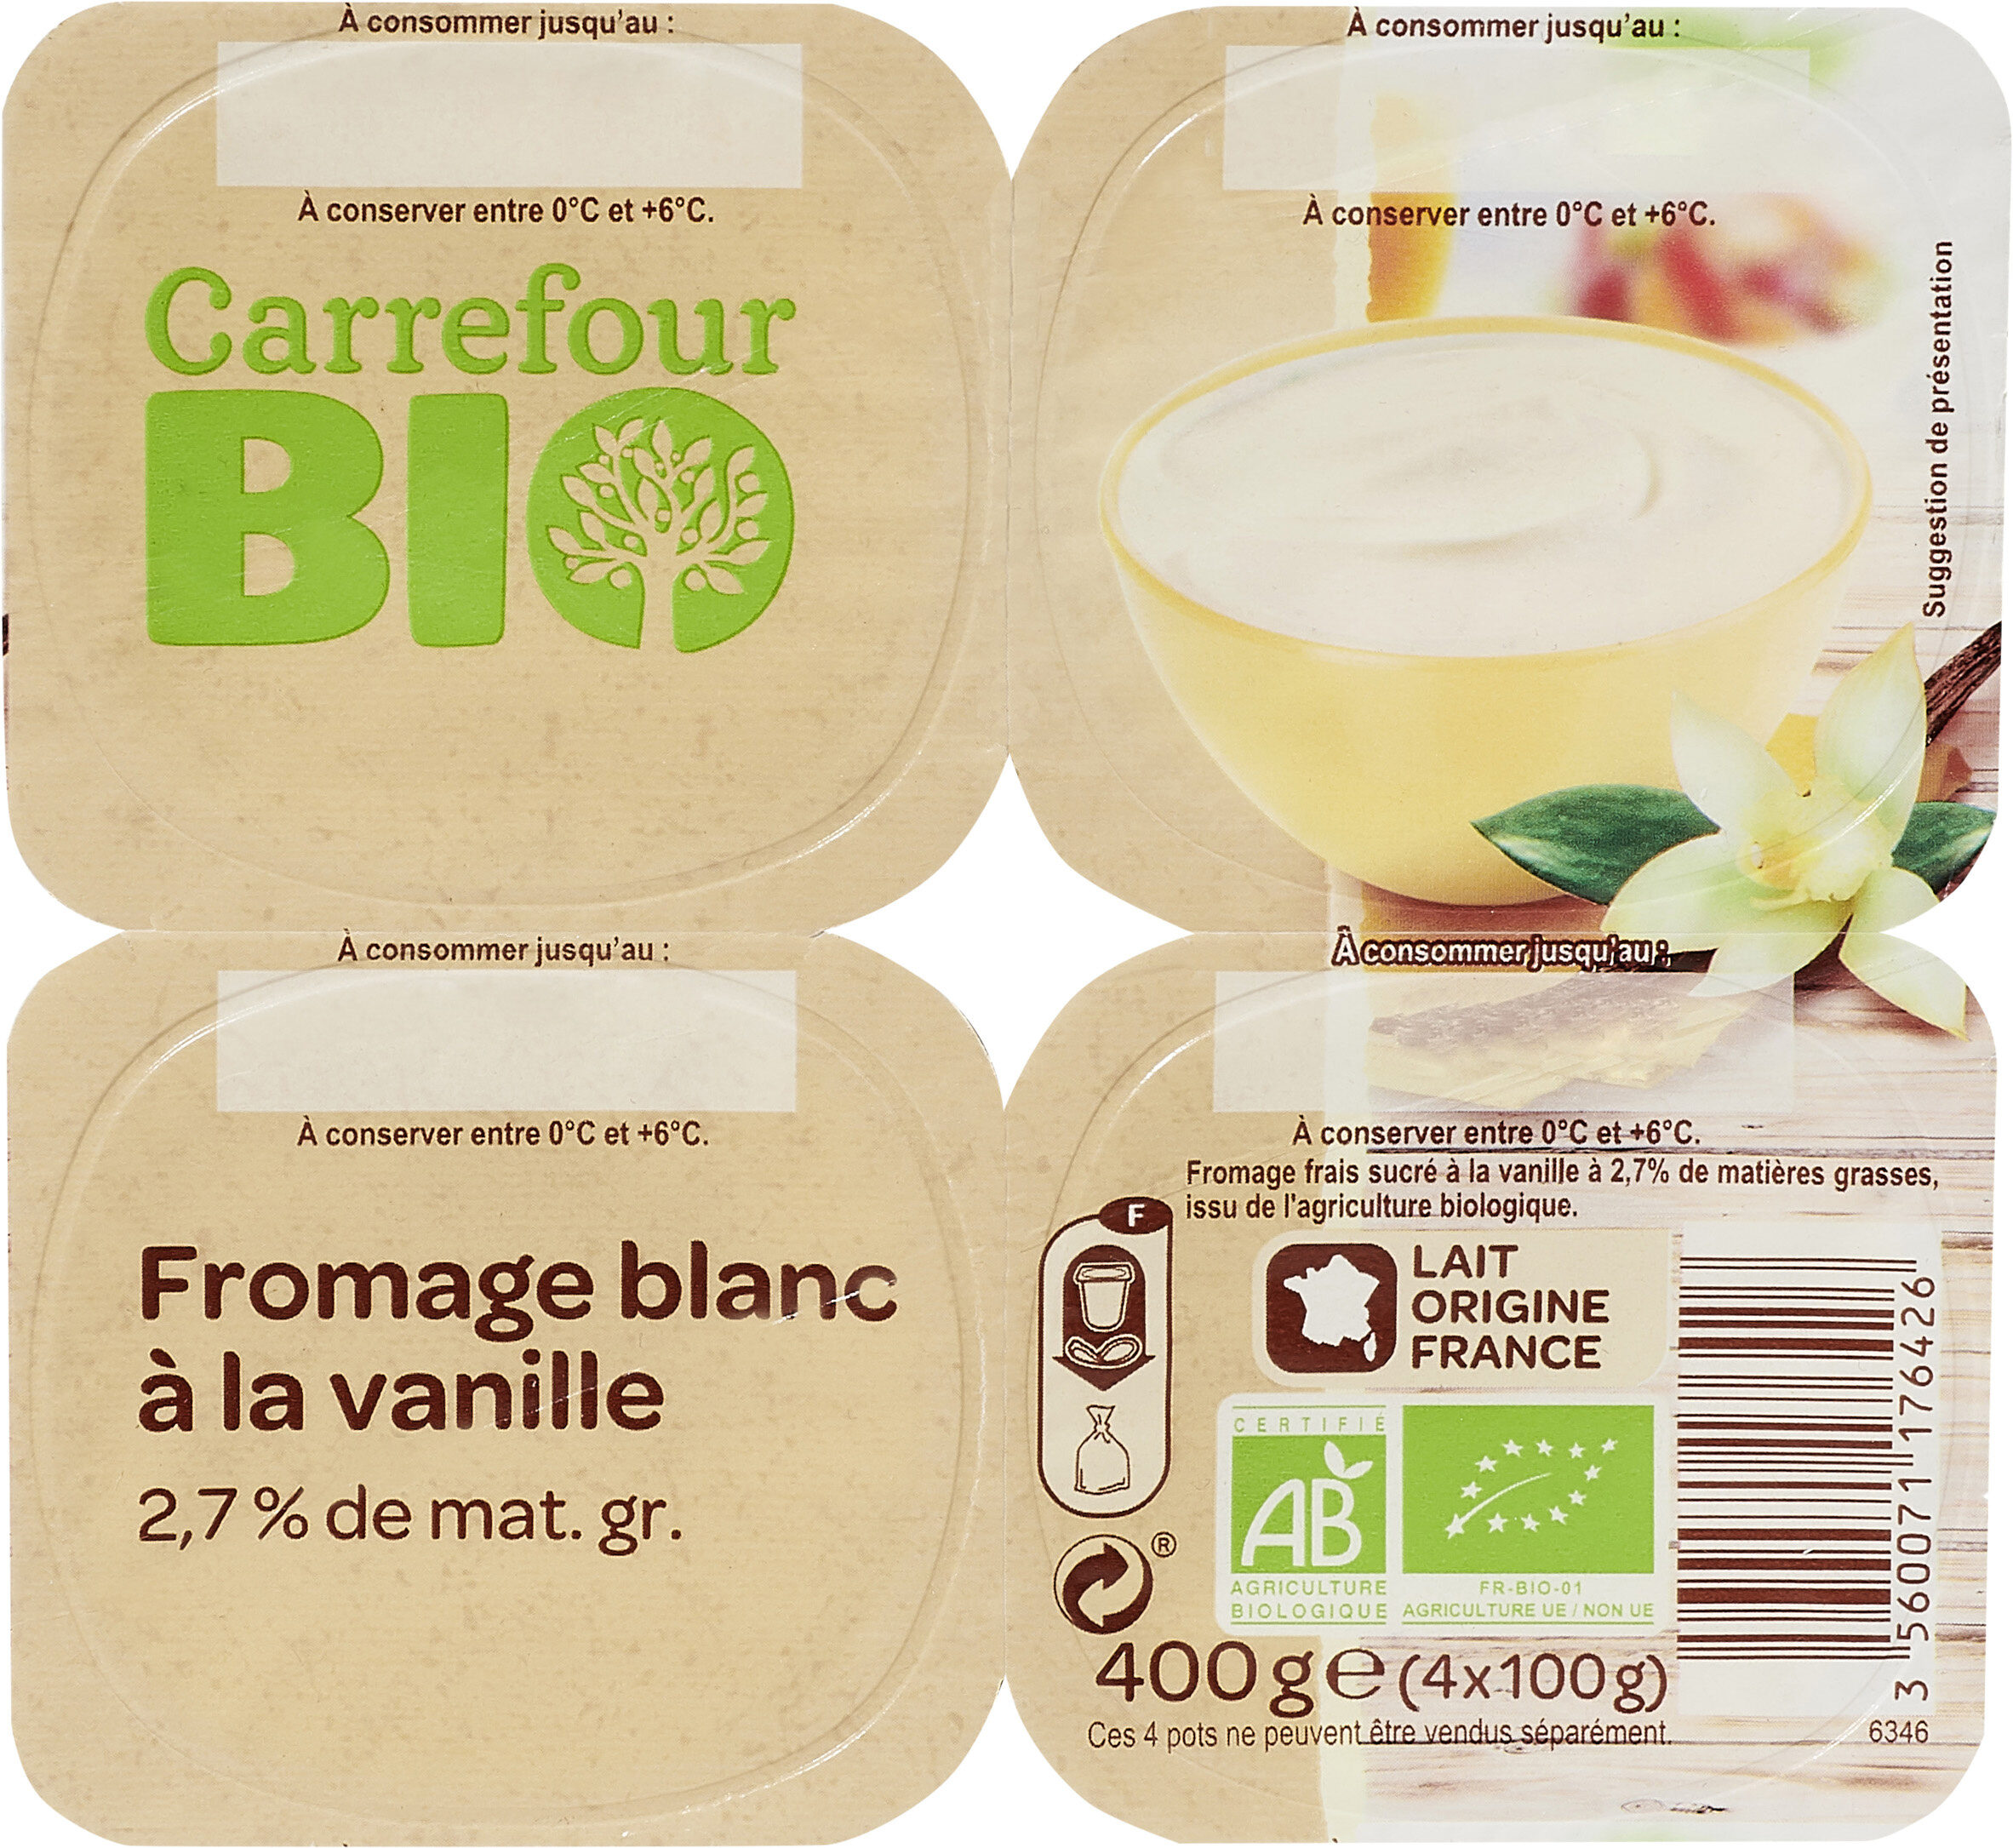 Fromage blanc a la vanille - Product - fr